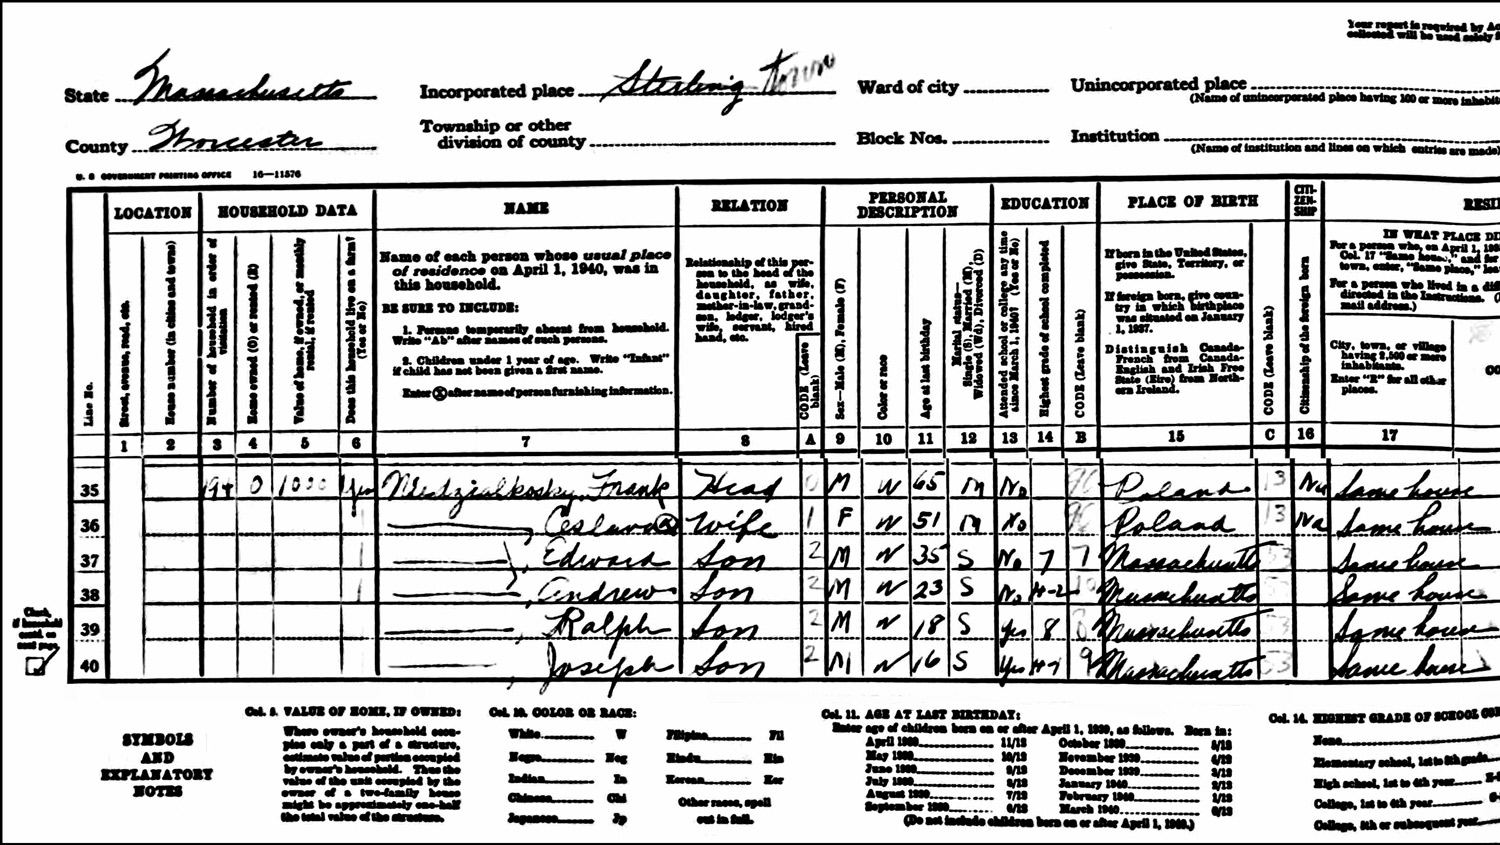 1940 US Federal Census Record for the Frank Niedzialkoski Household (Page A Left)